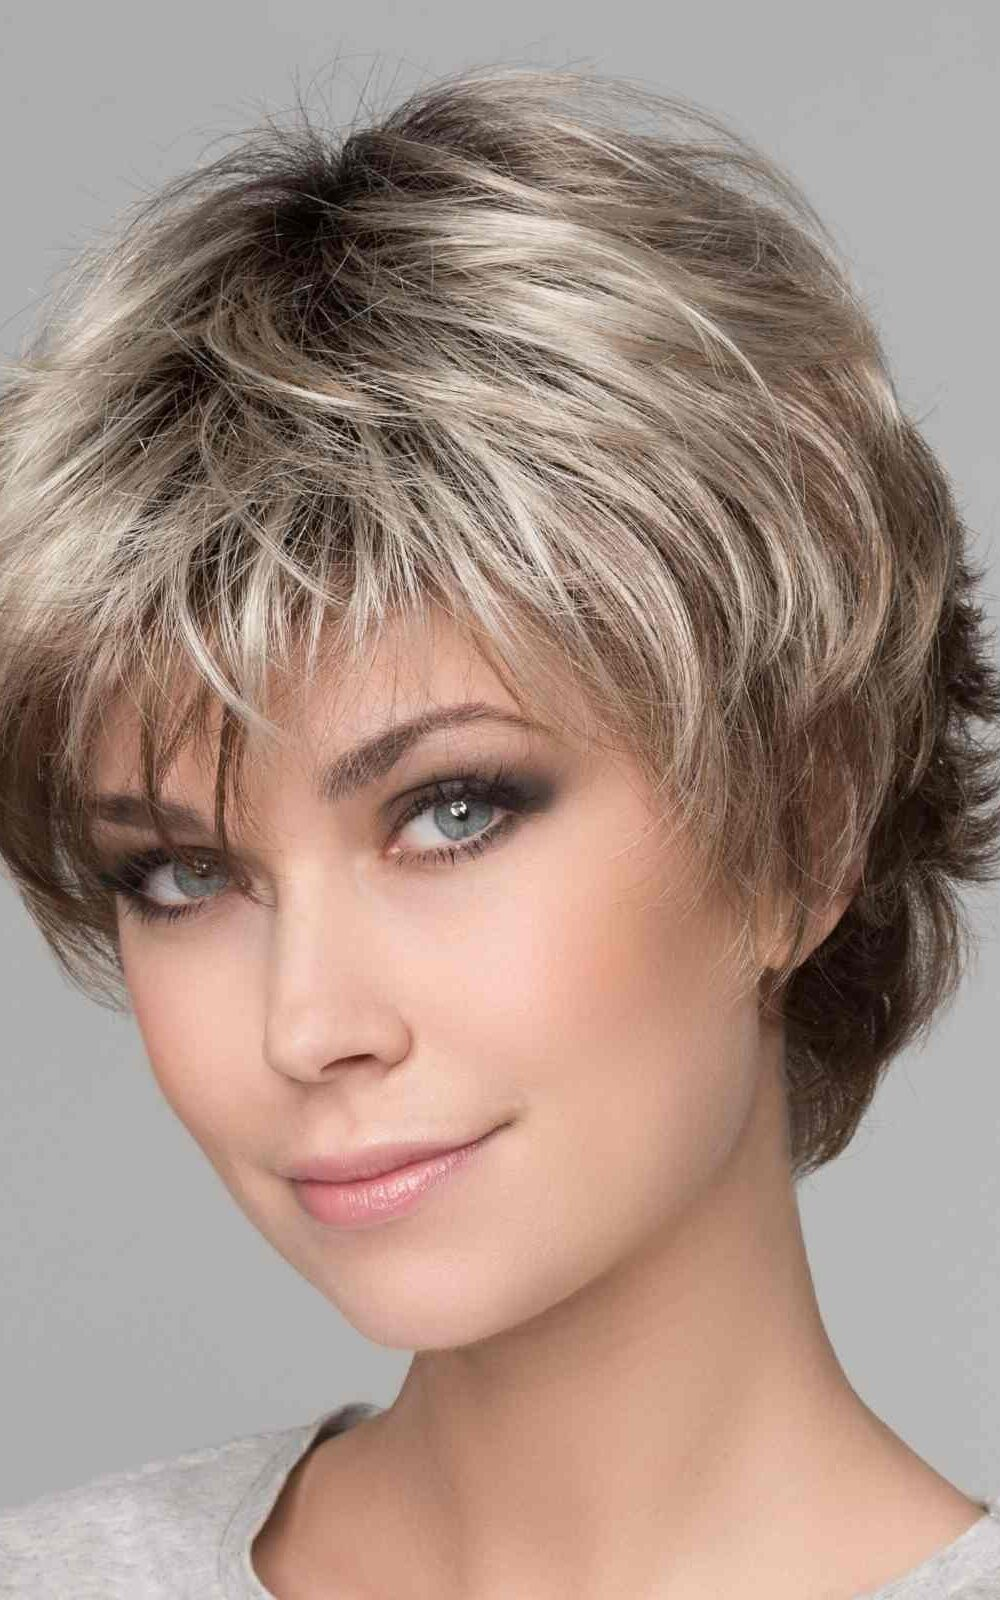 Club 10 Wig by Ellen Wille | Short Synthetic Wig | Colour Sand Multi Rooted | Elly-k.com.au